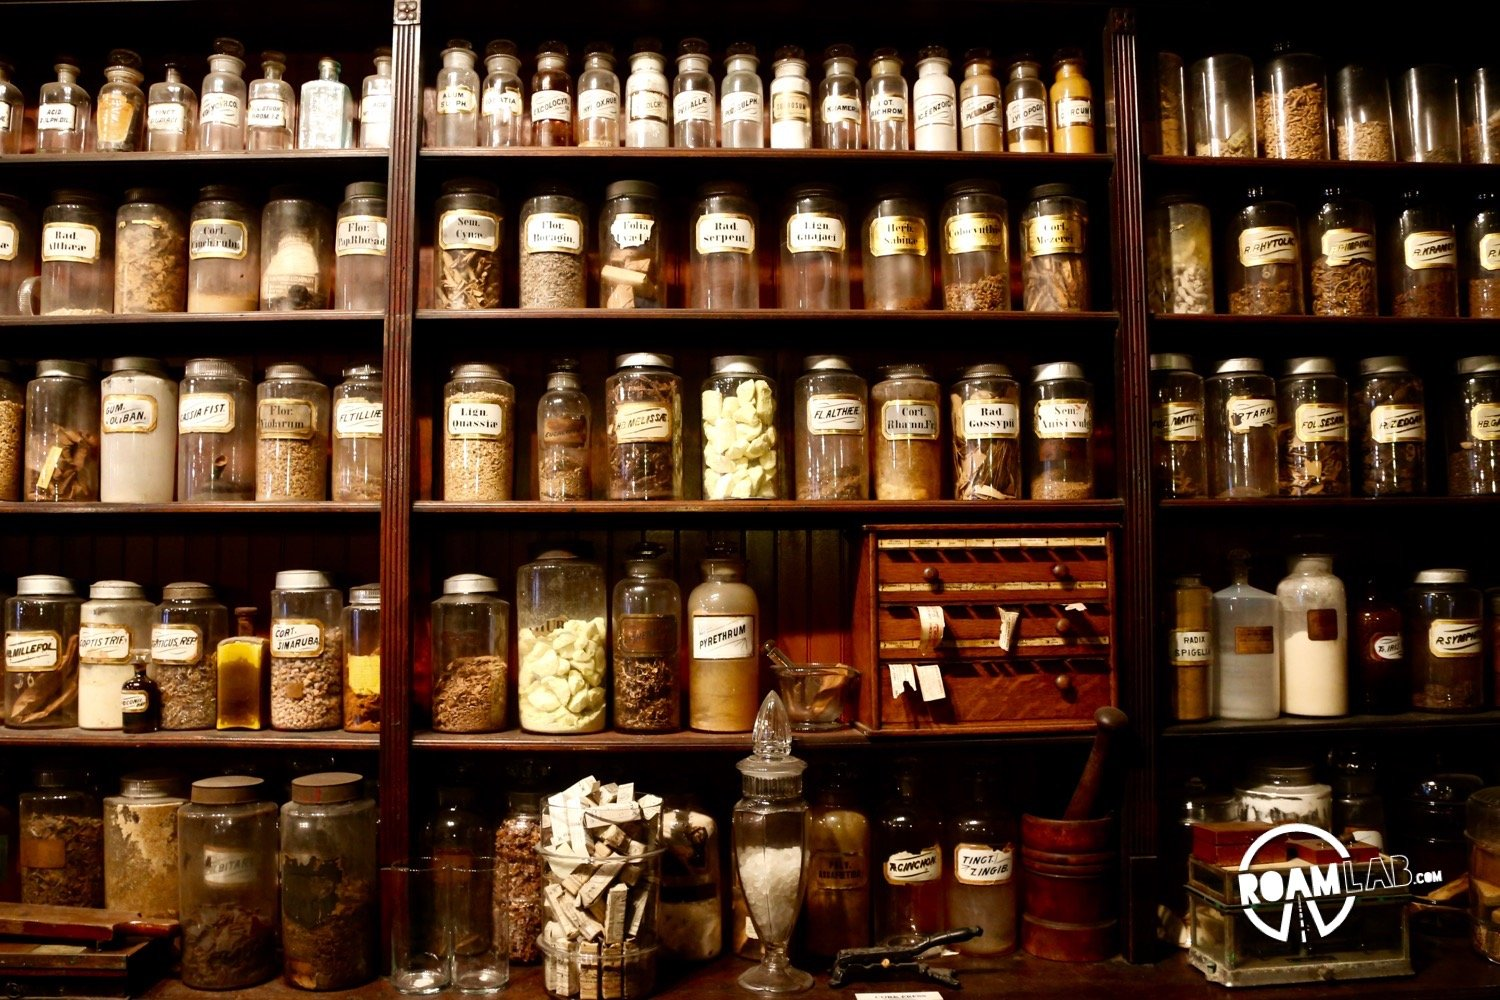 New Orleans Pharmacy Museum explores the history of medicine from leeches to voodoo and everything in between.